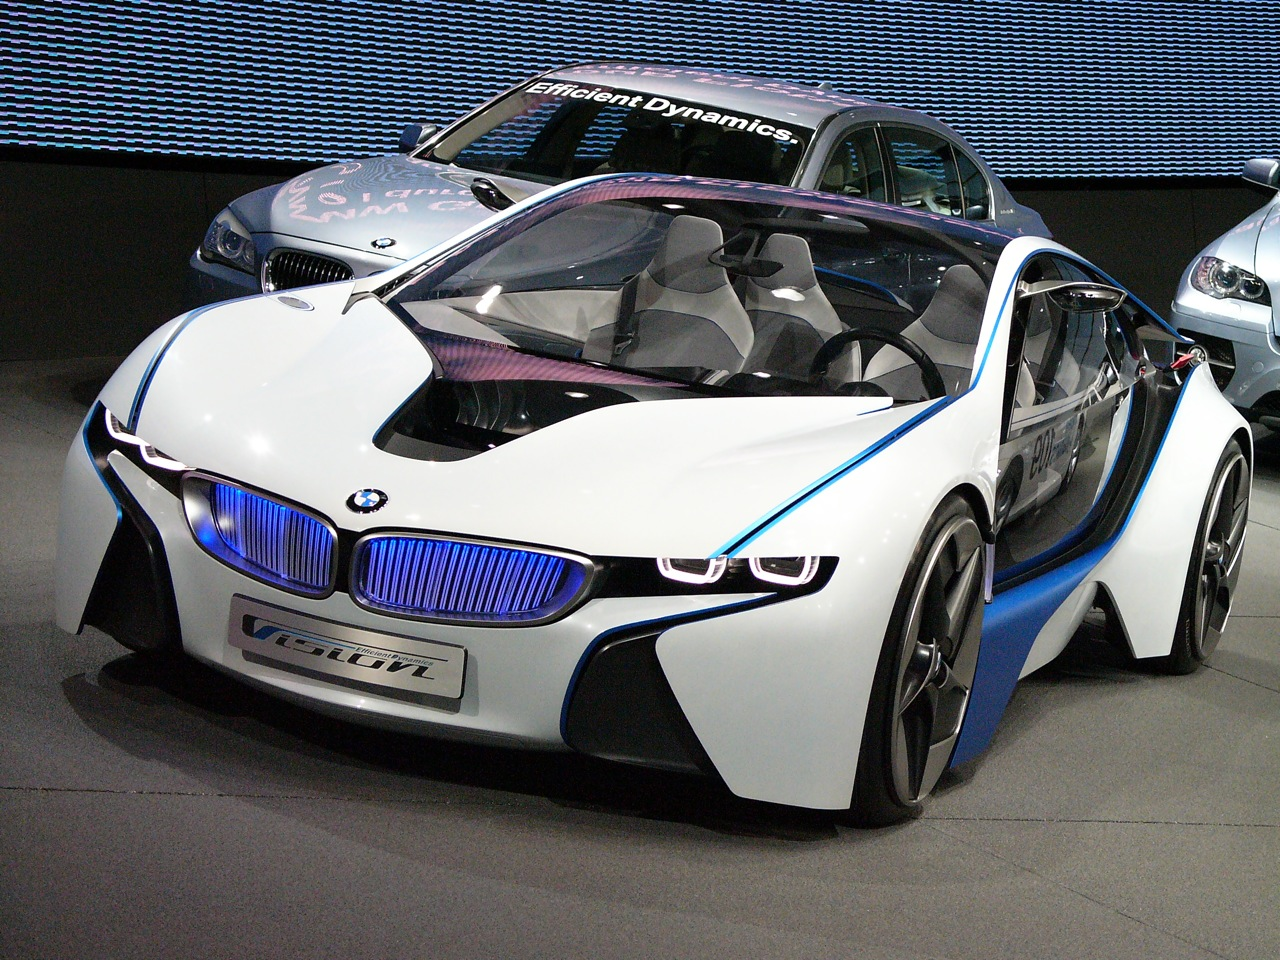 Cool Bmw cars wallpapers